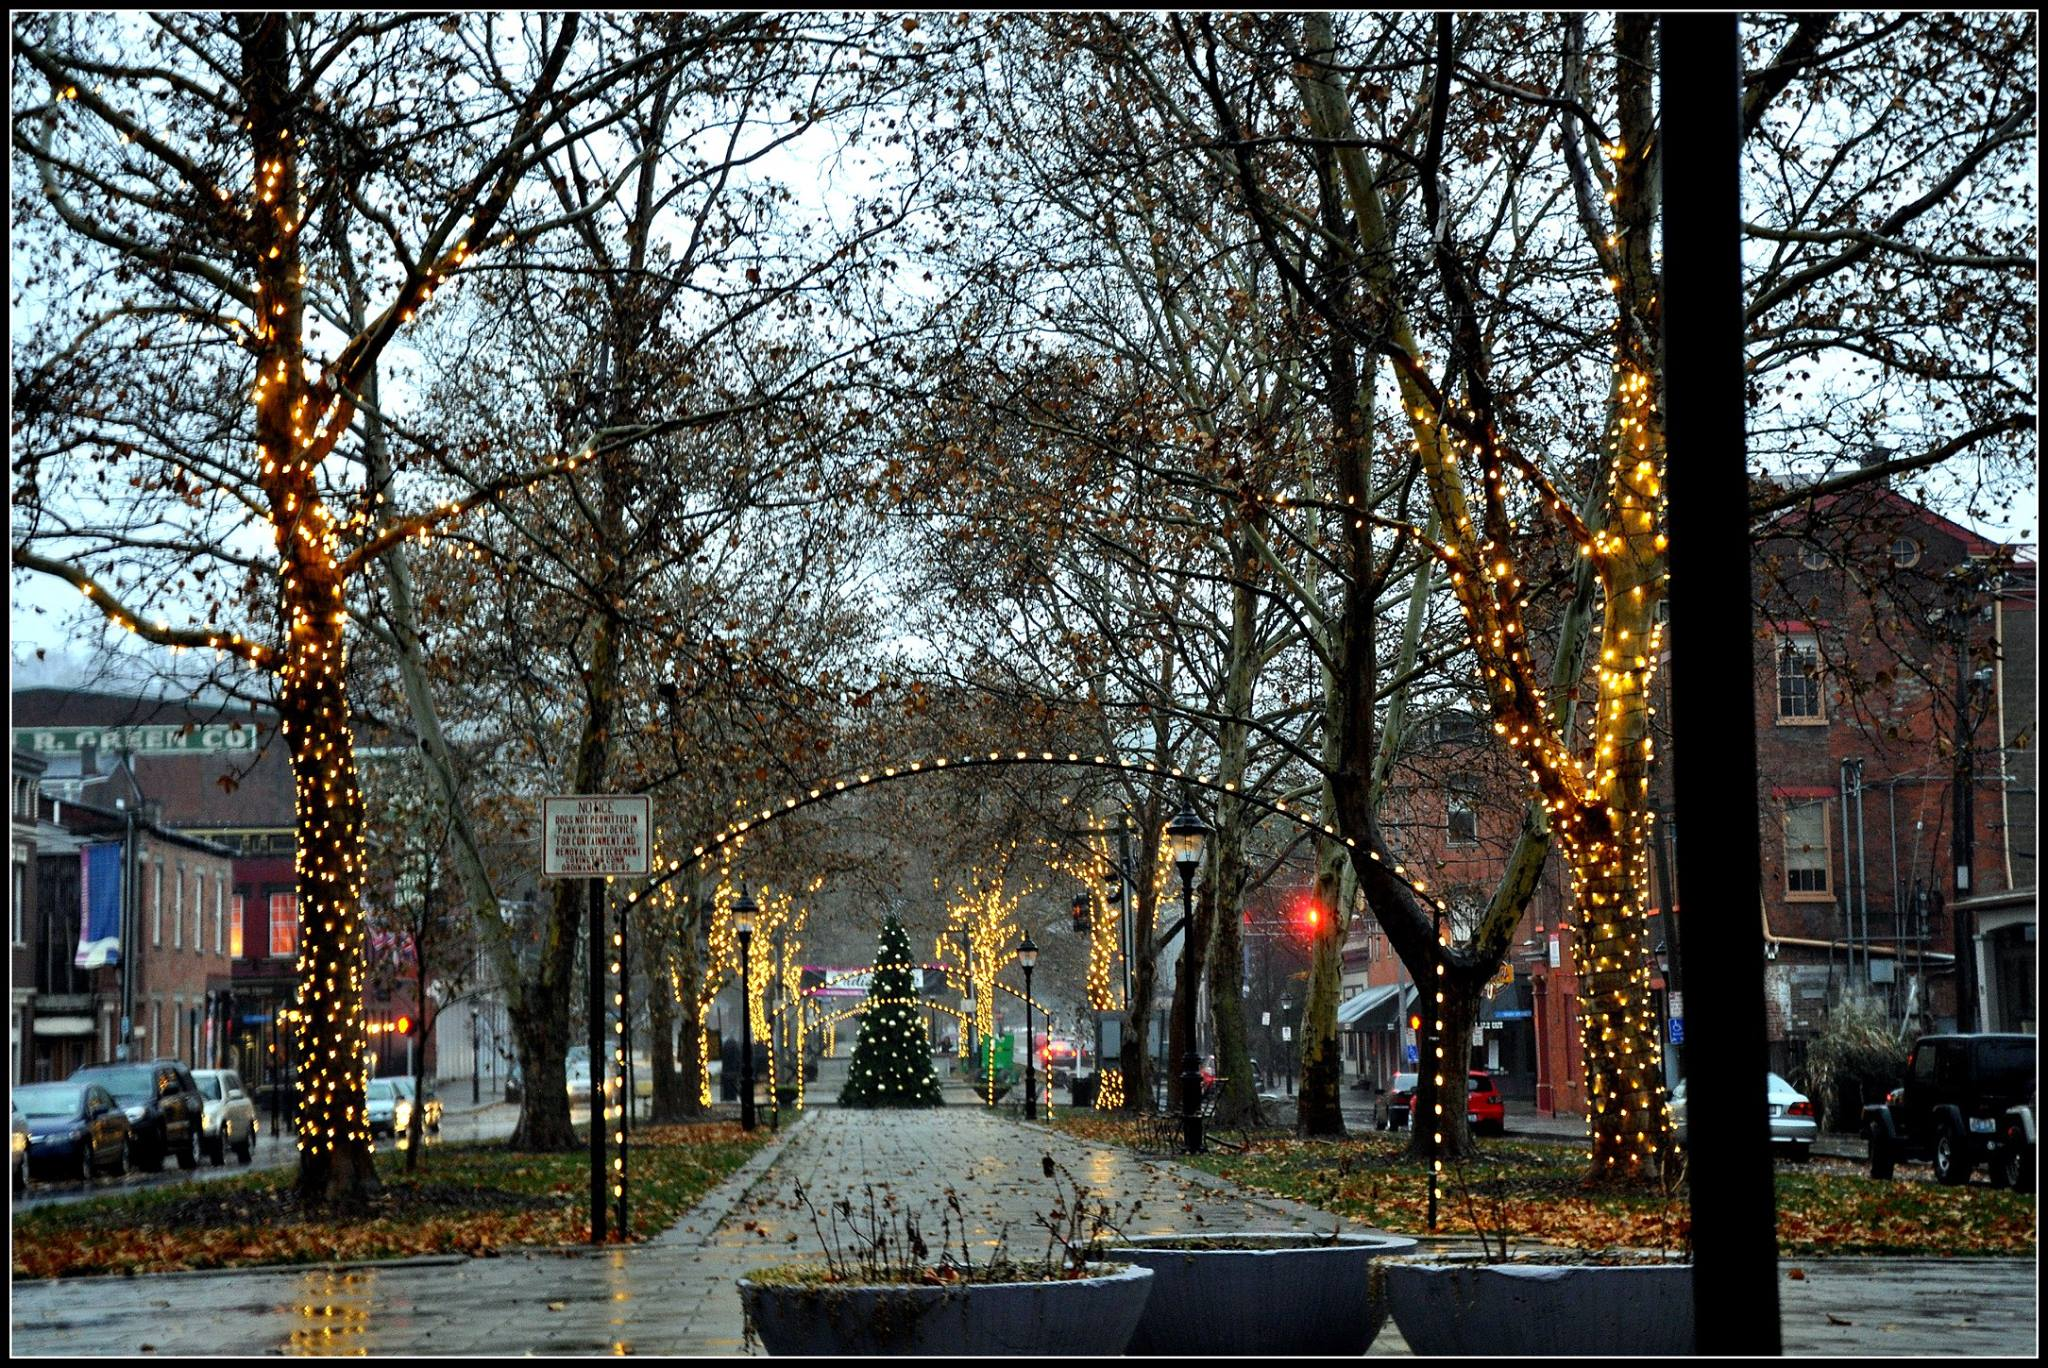 MainStrasse 6th Street at Christmas.jpg